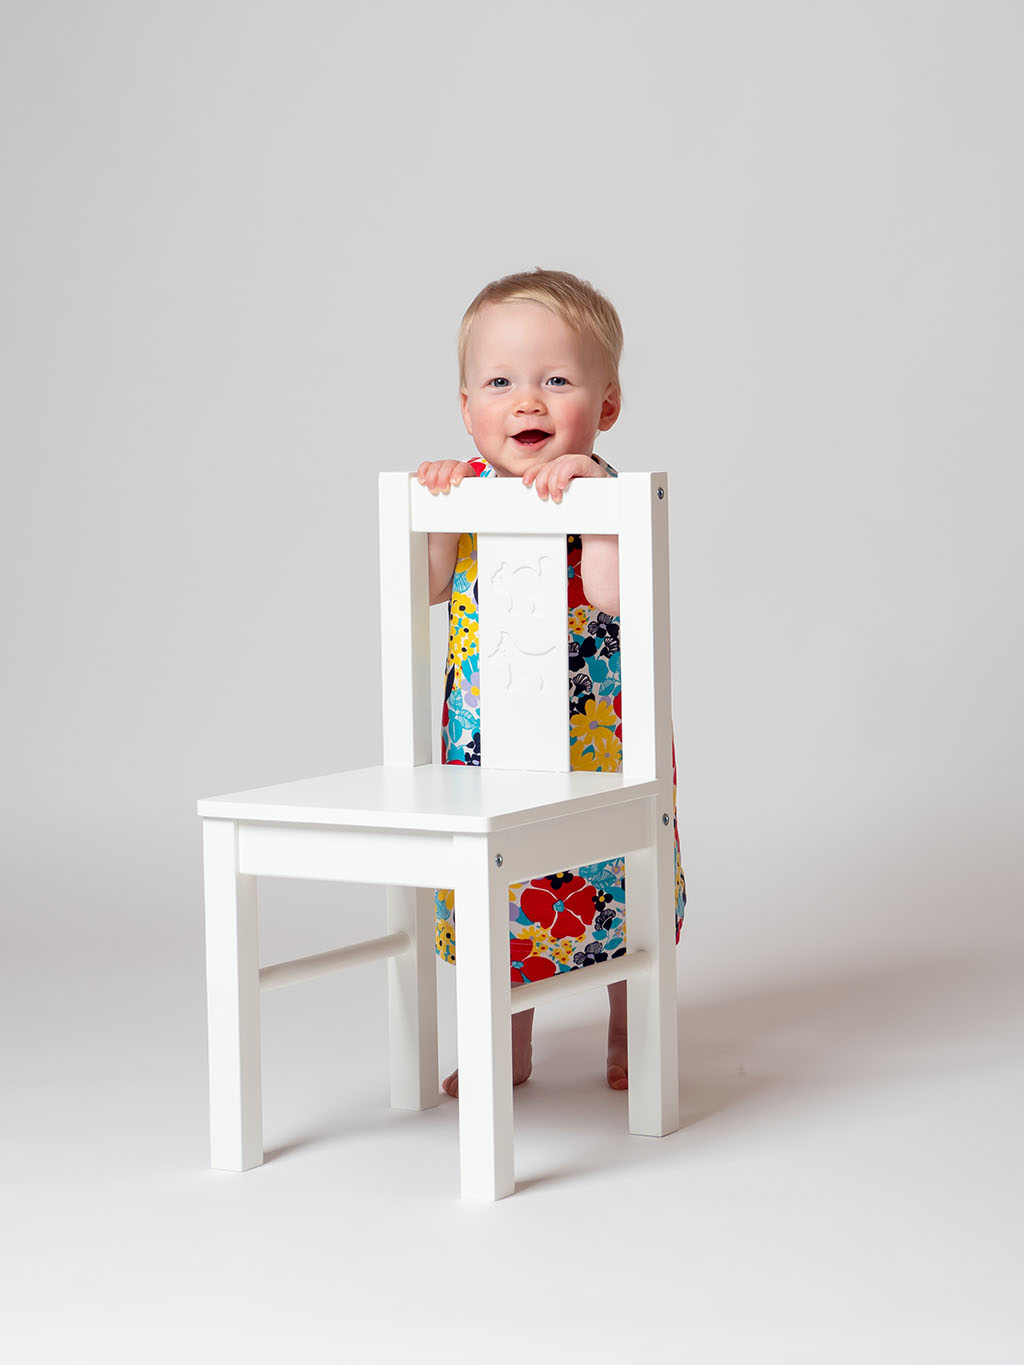 tiny toddler standing behind white wooden chair smiling at the camera taken by qualified baby photographer in Braintree, Essex